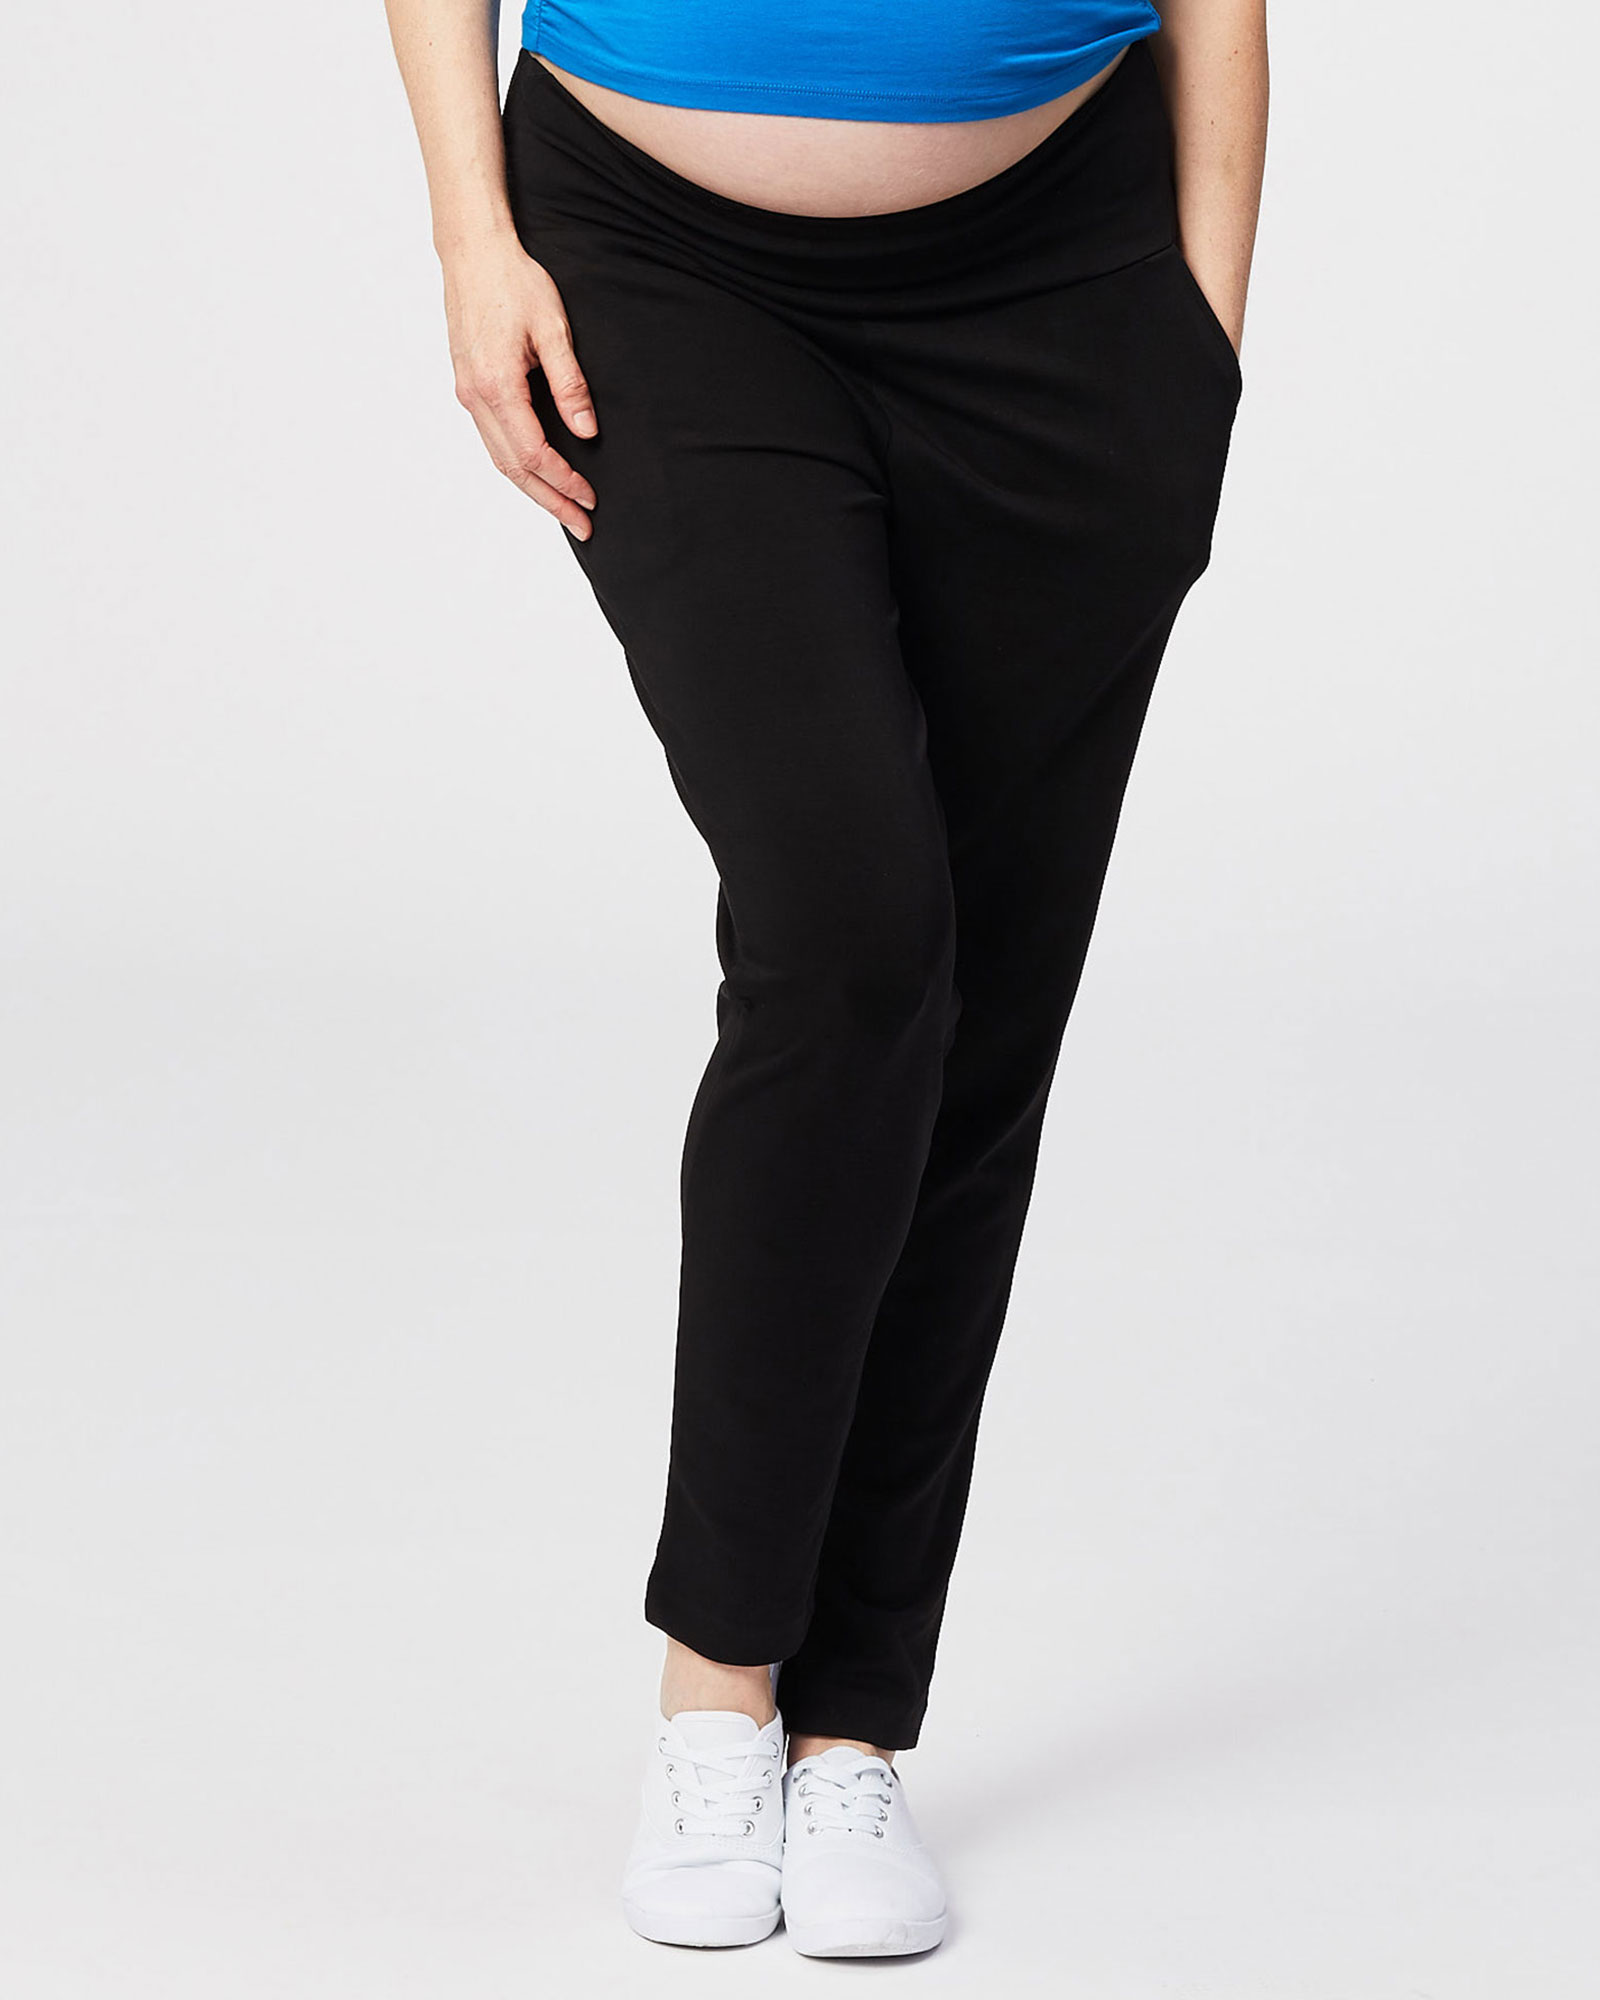 Relaxed Soft Ponte Full Length Maternity Pant